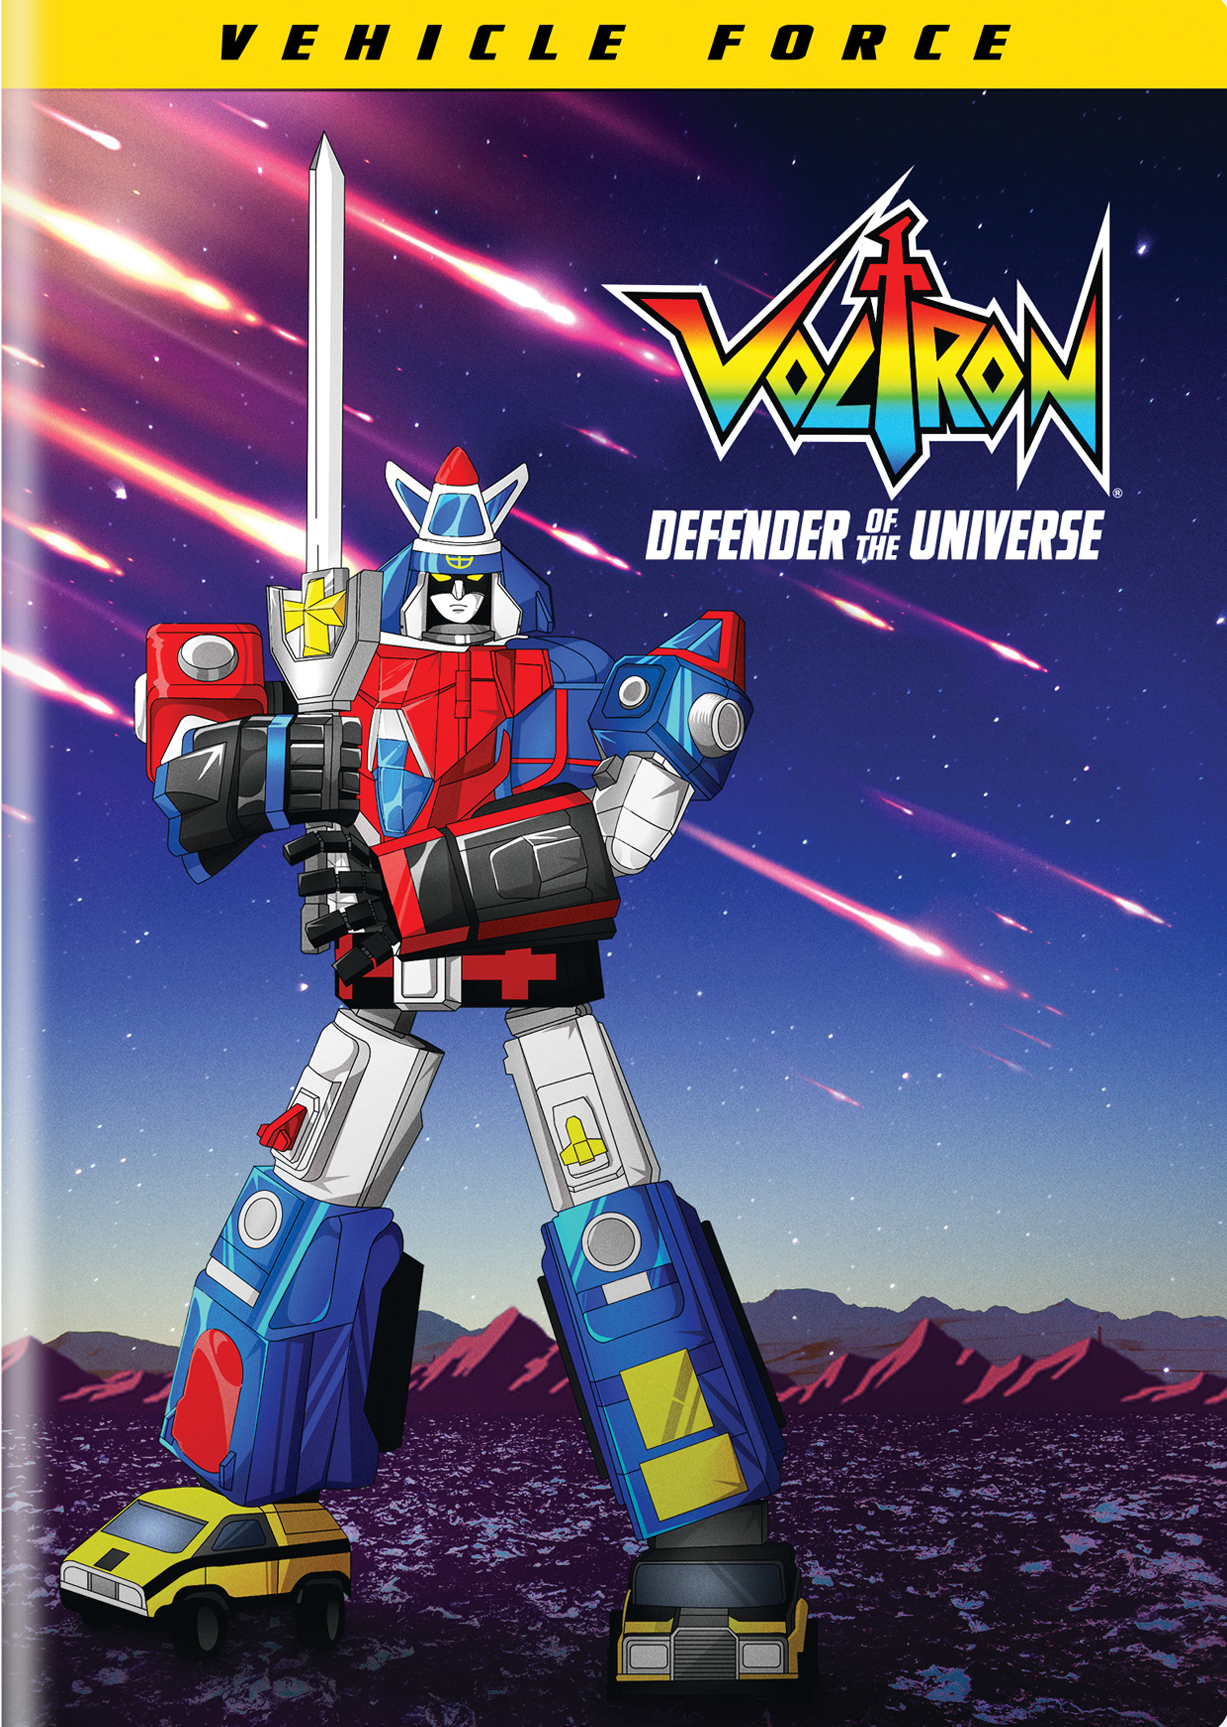 Voltron: Defender of the Universe Vehicle Force [DVD] - Best Buy